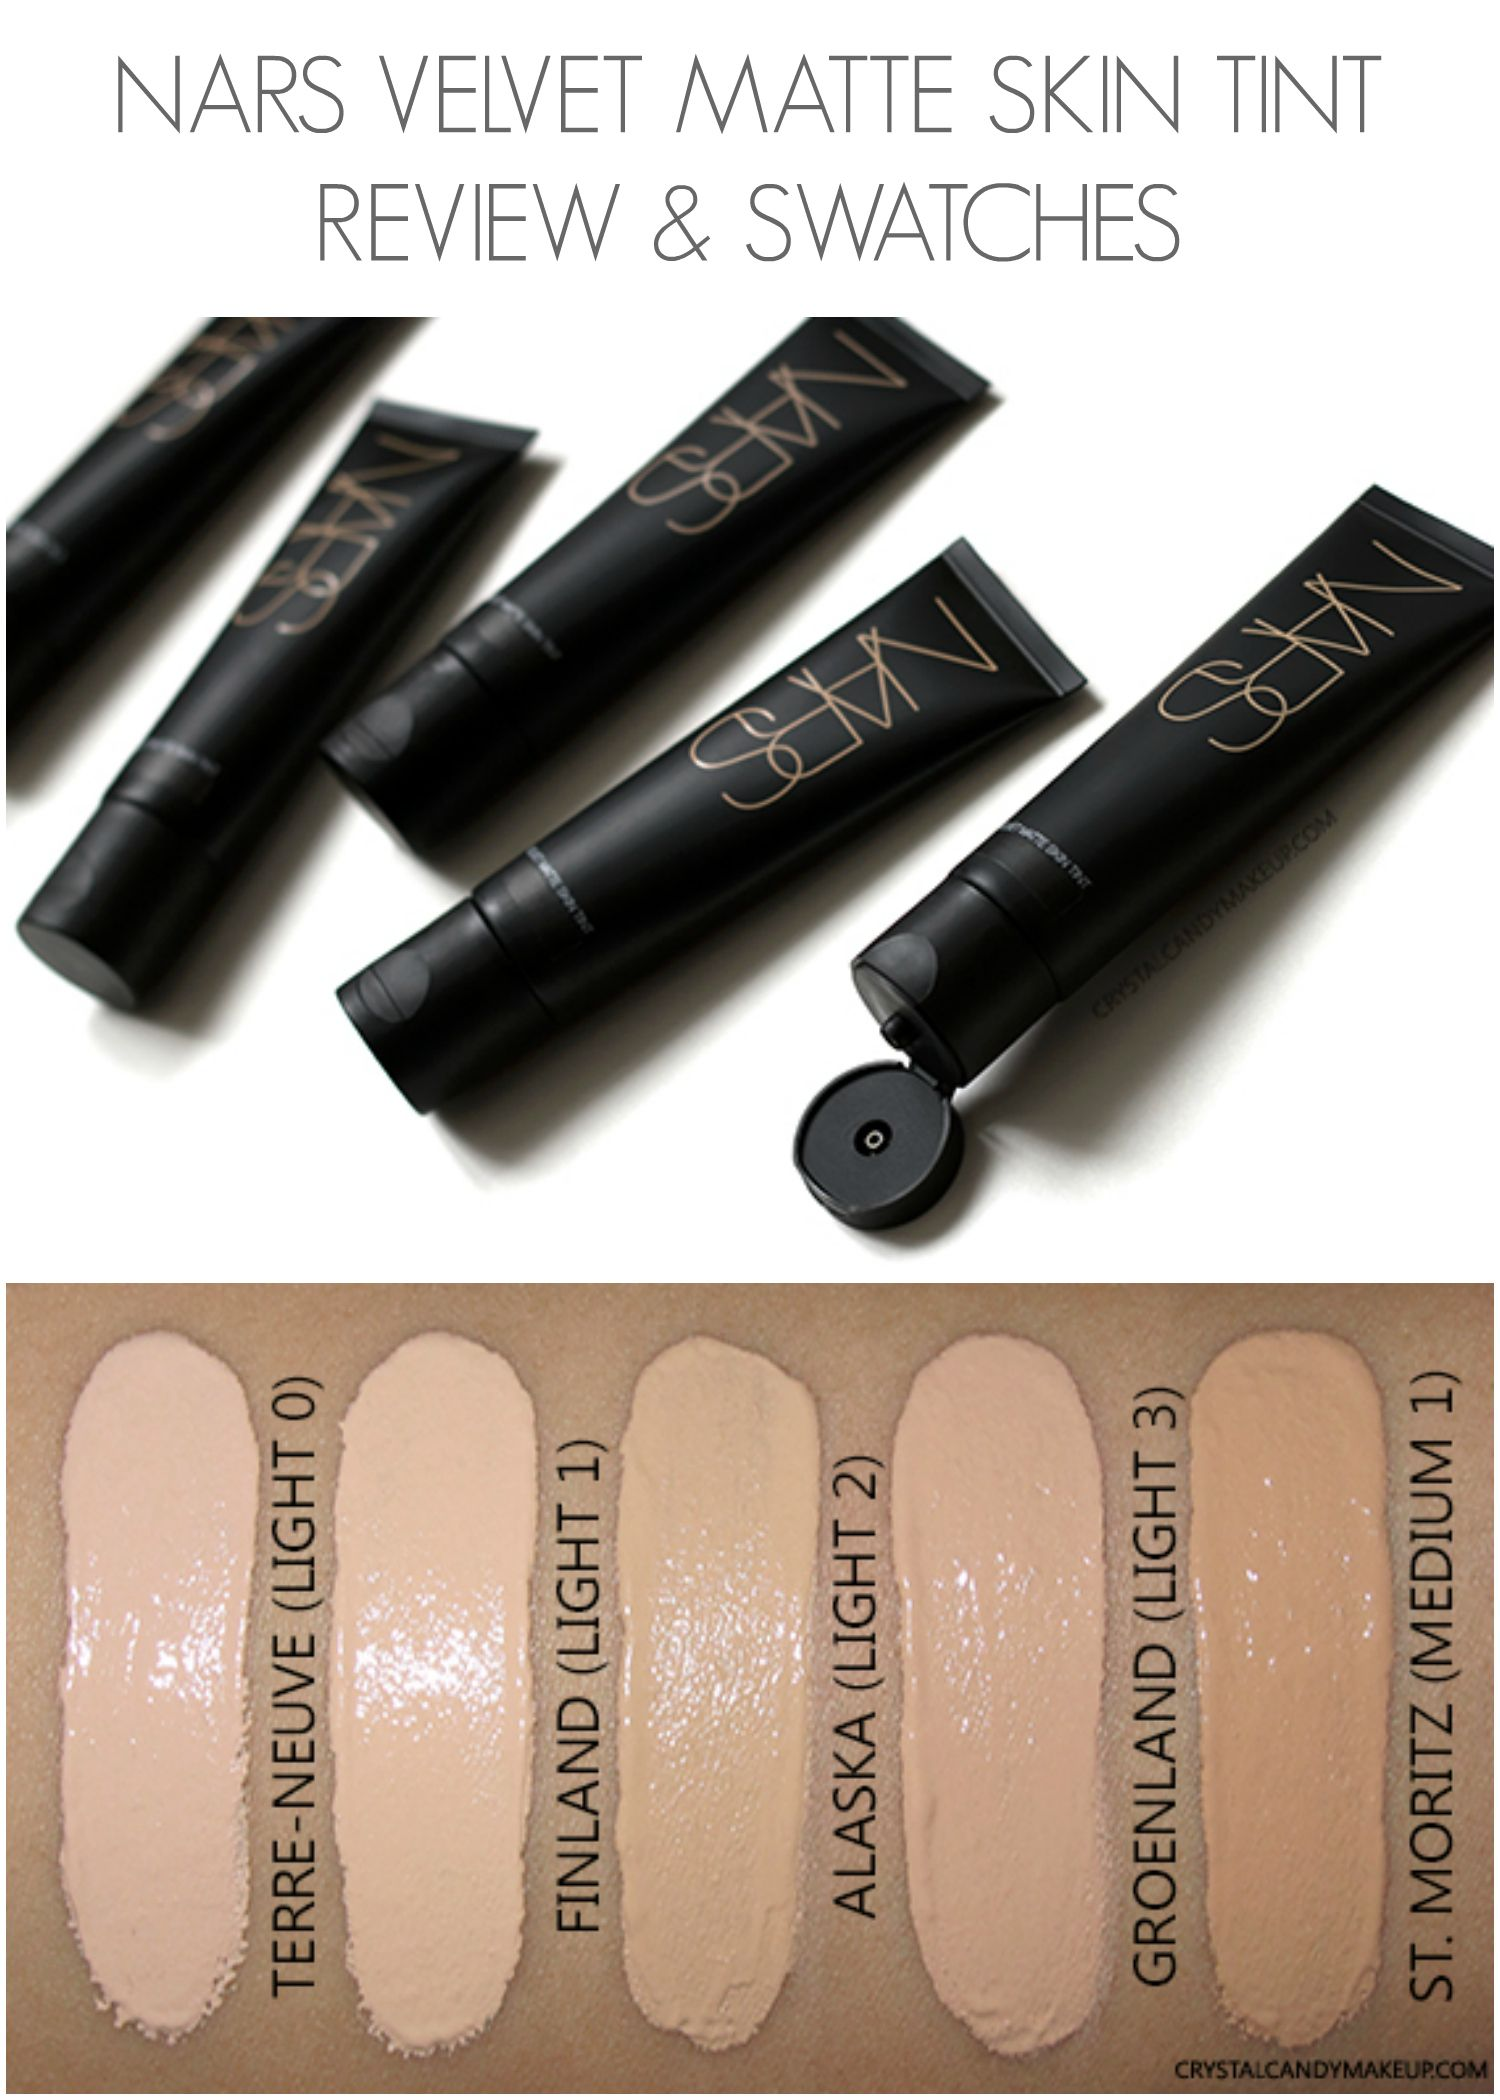 foto de NARS Velvet Matte Skin Tint - Review and Swatches | Nars velvet ...